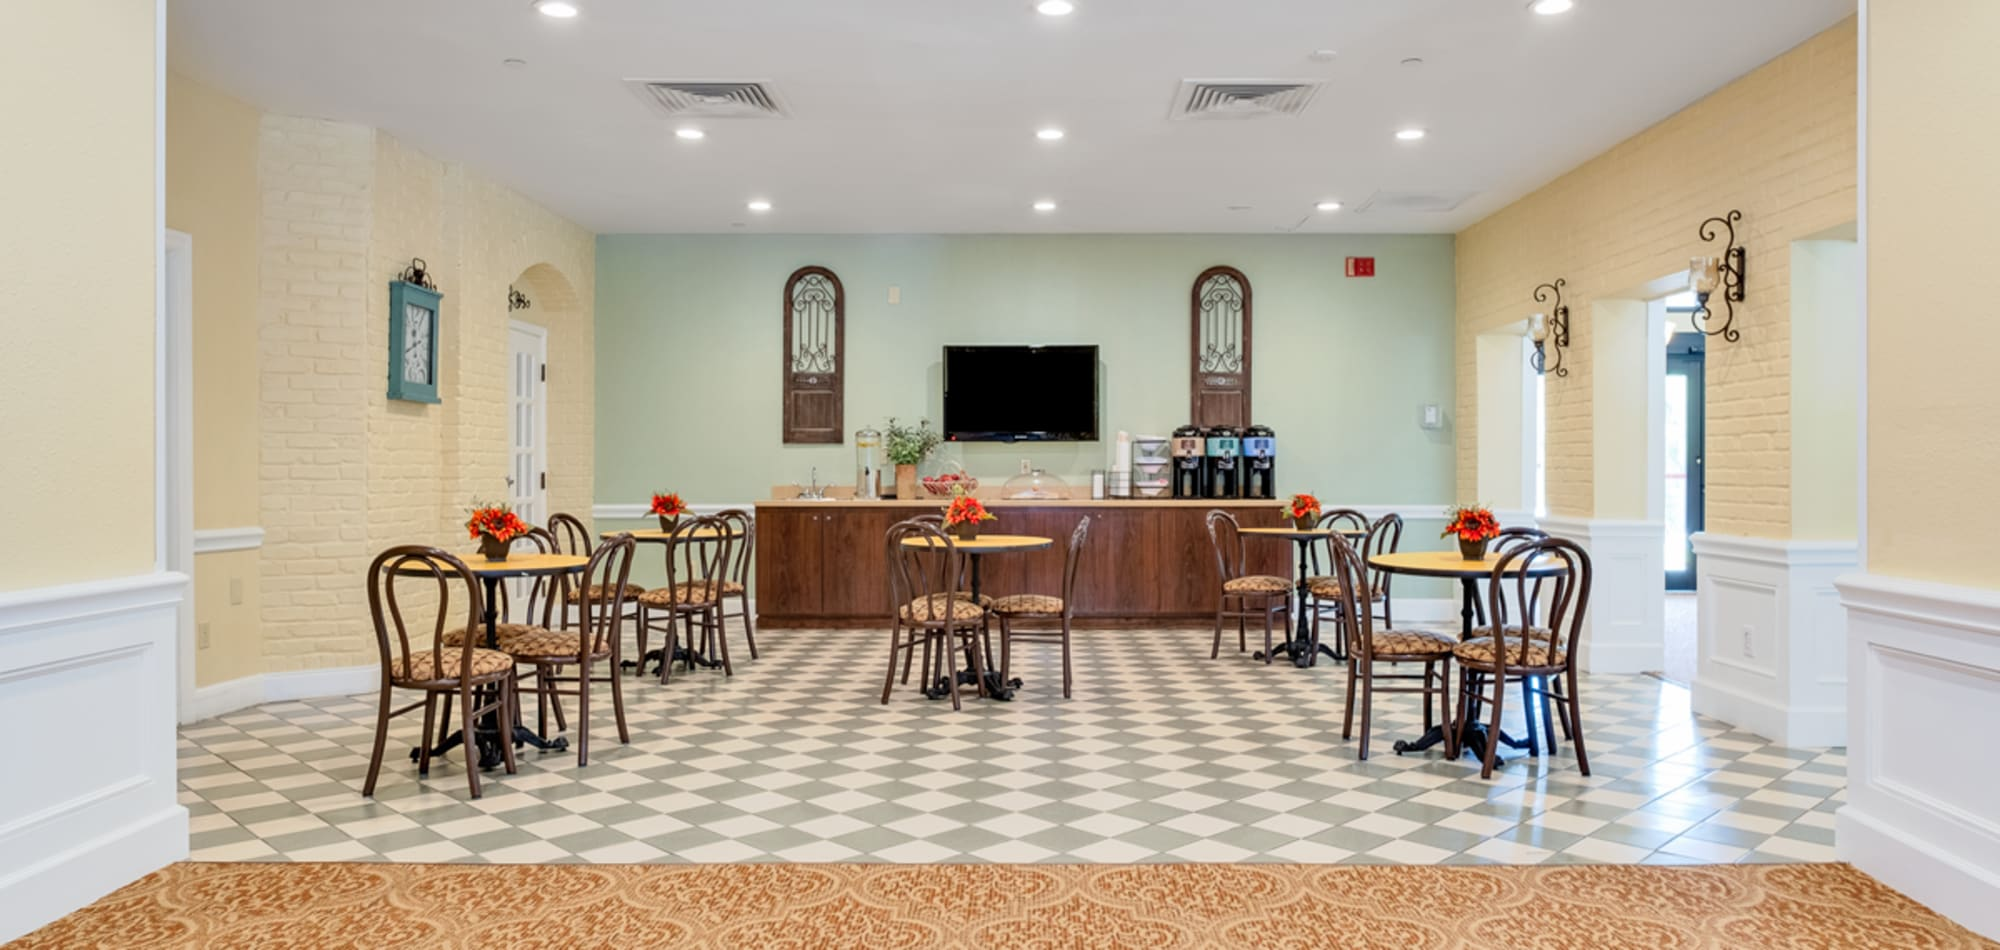 Grand Villa of Boynton Beach in Florida senior living